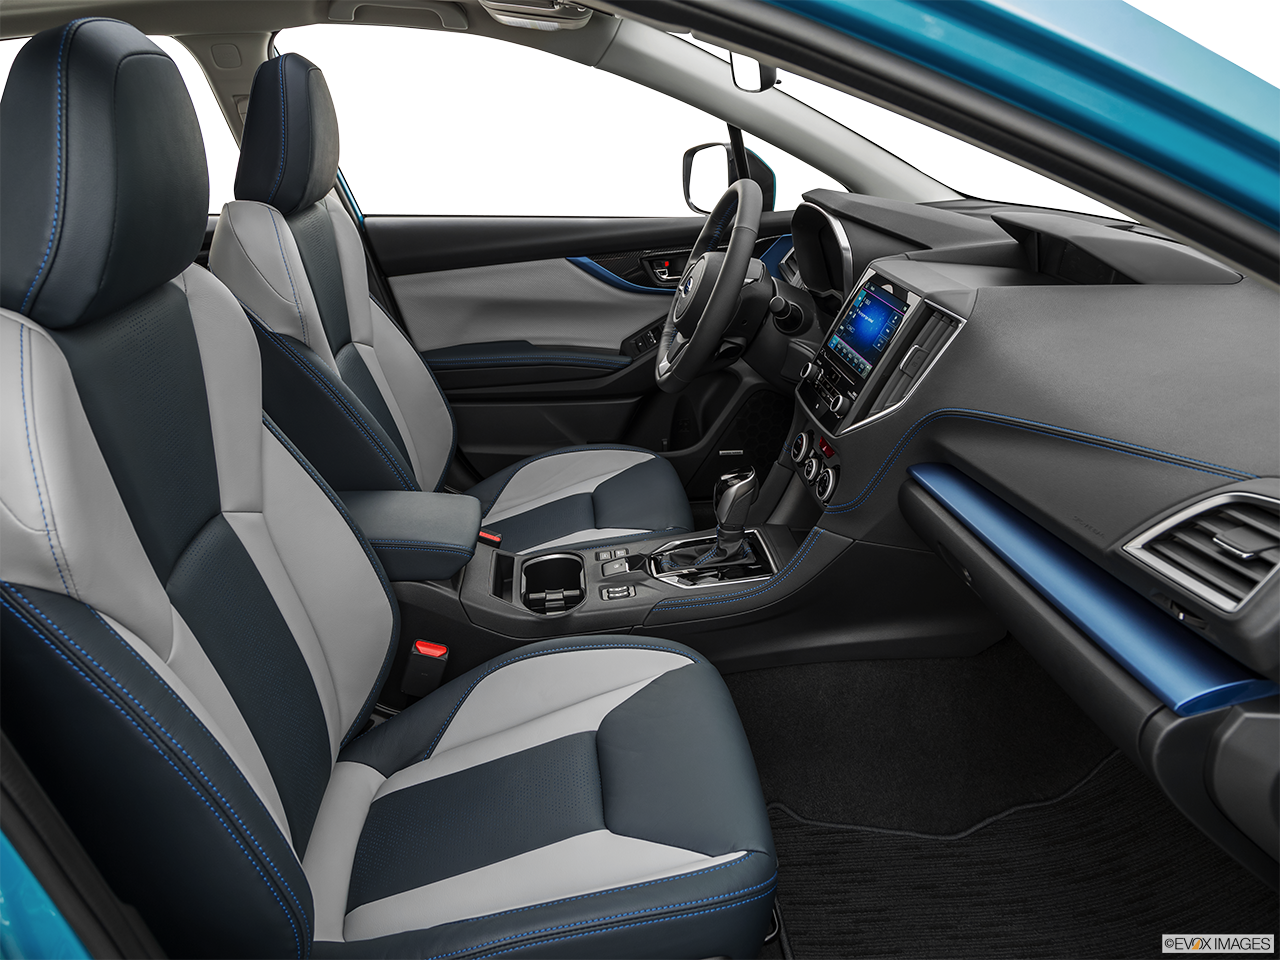 Interior view of the Subaru Crosstrek Hybrid